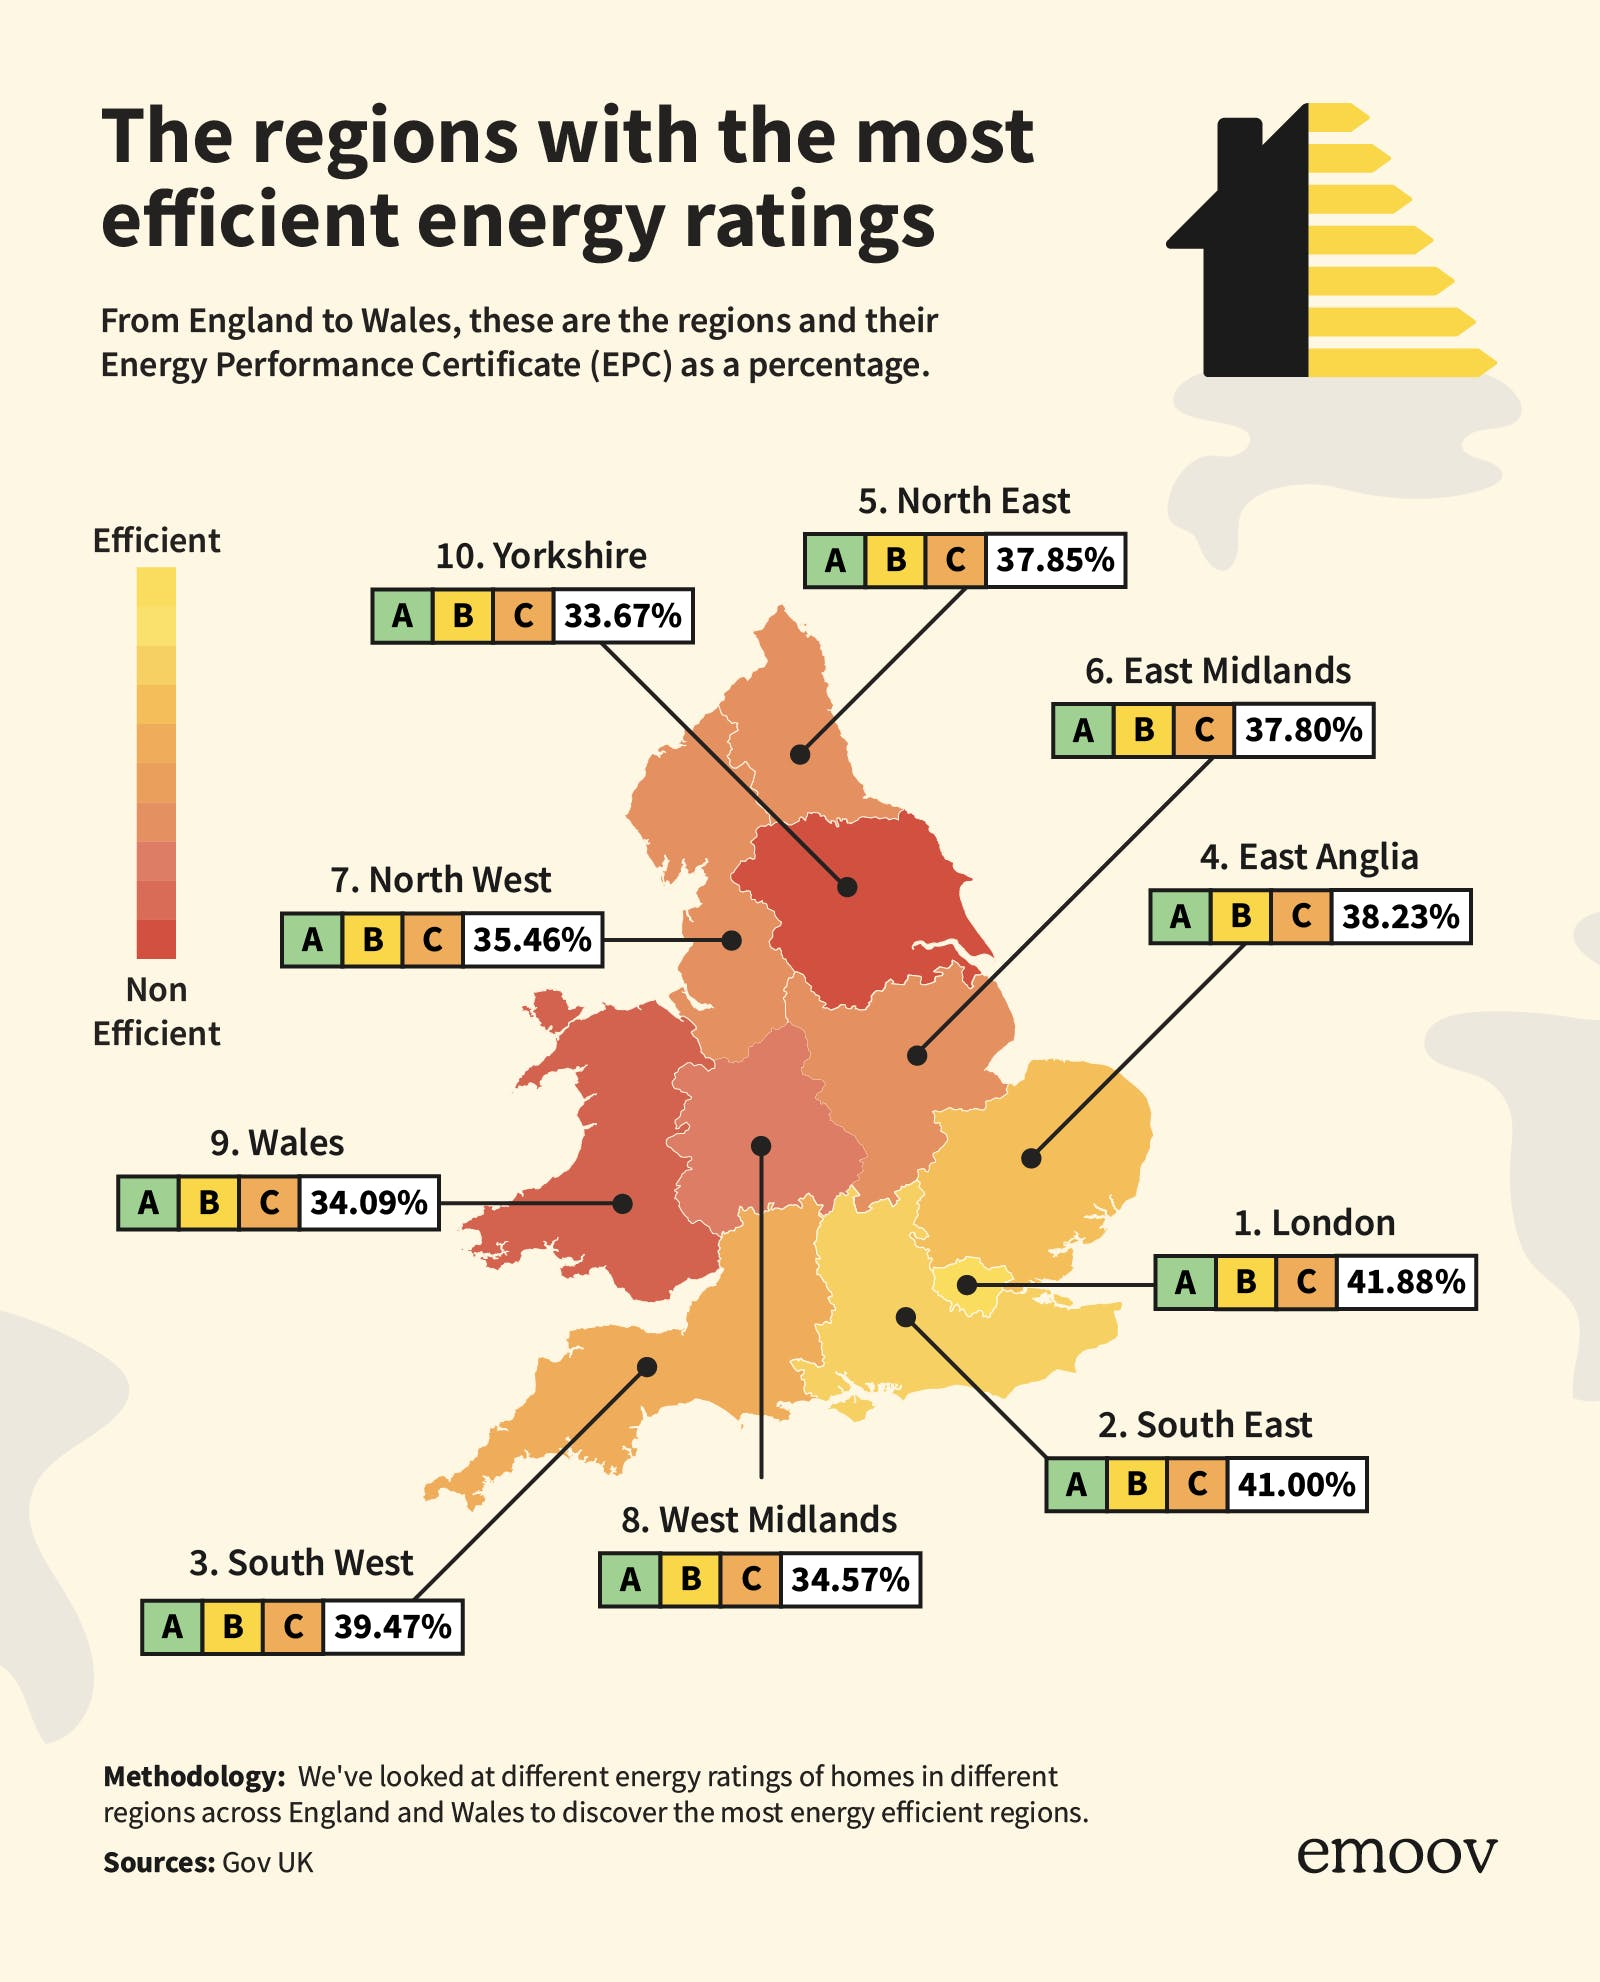 So how do the UK property types compare when it comes to energy efficiency?